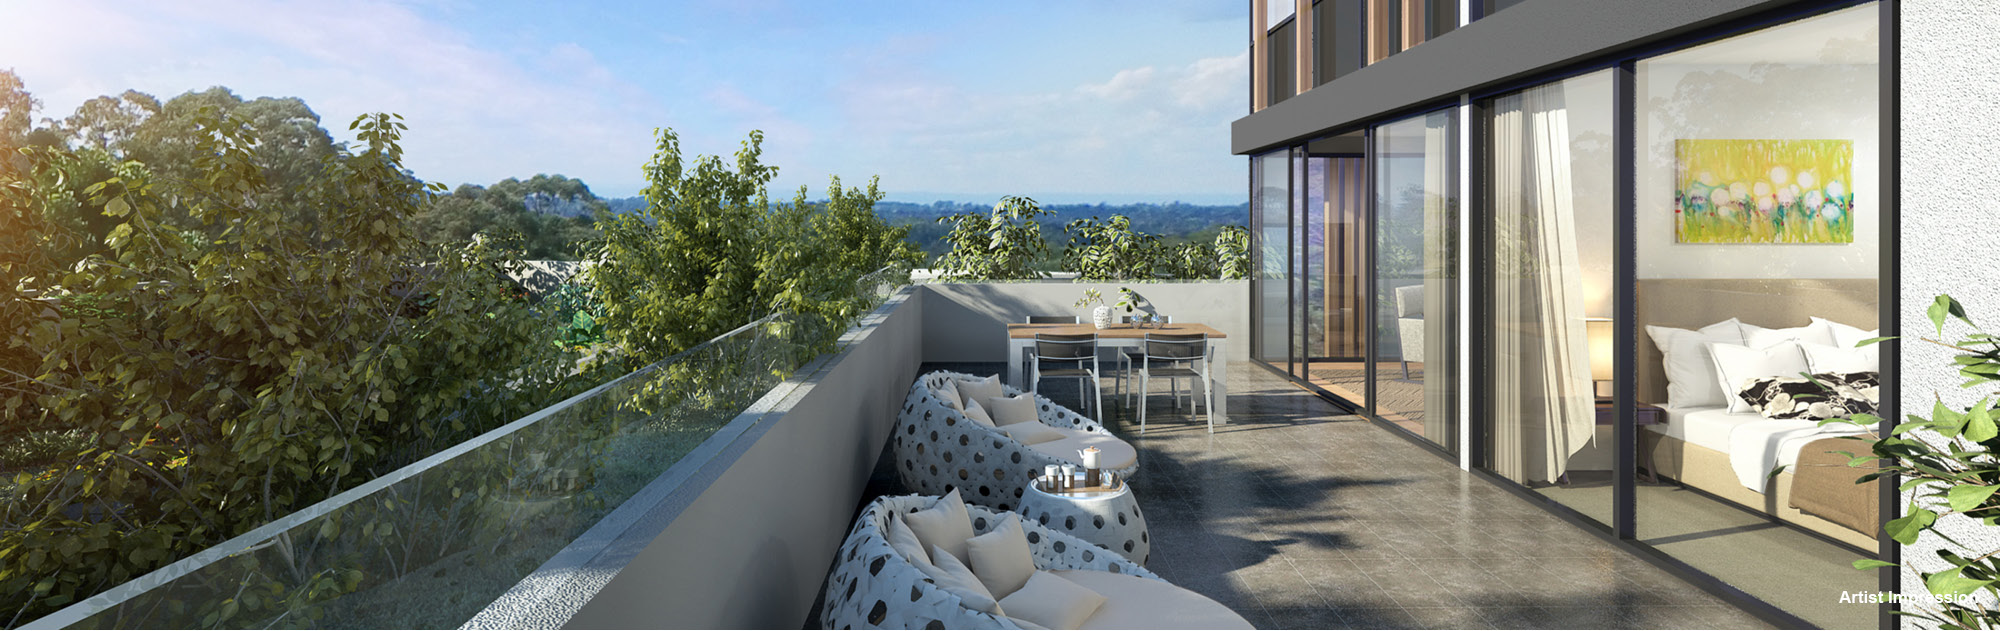 One Avon Apartments For Sale Cbre Residential Projects New South Wales Pymble Nsw 2073